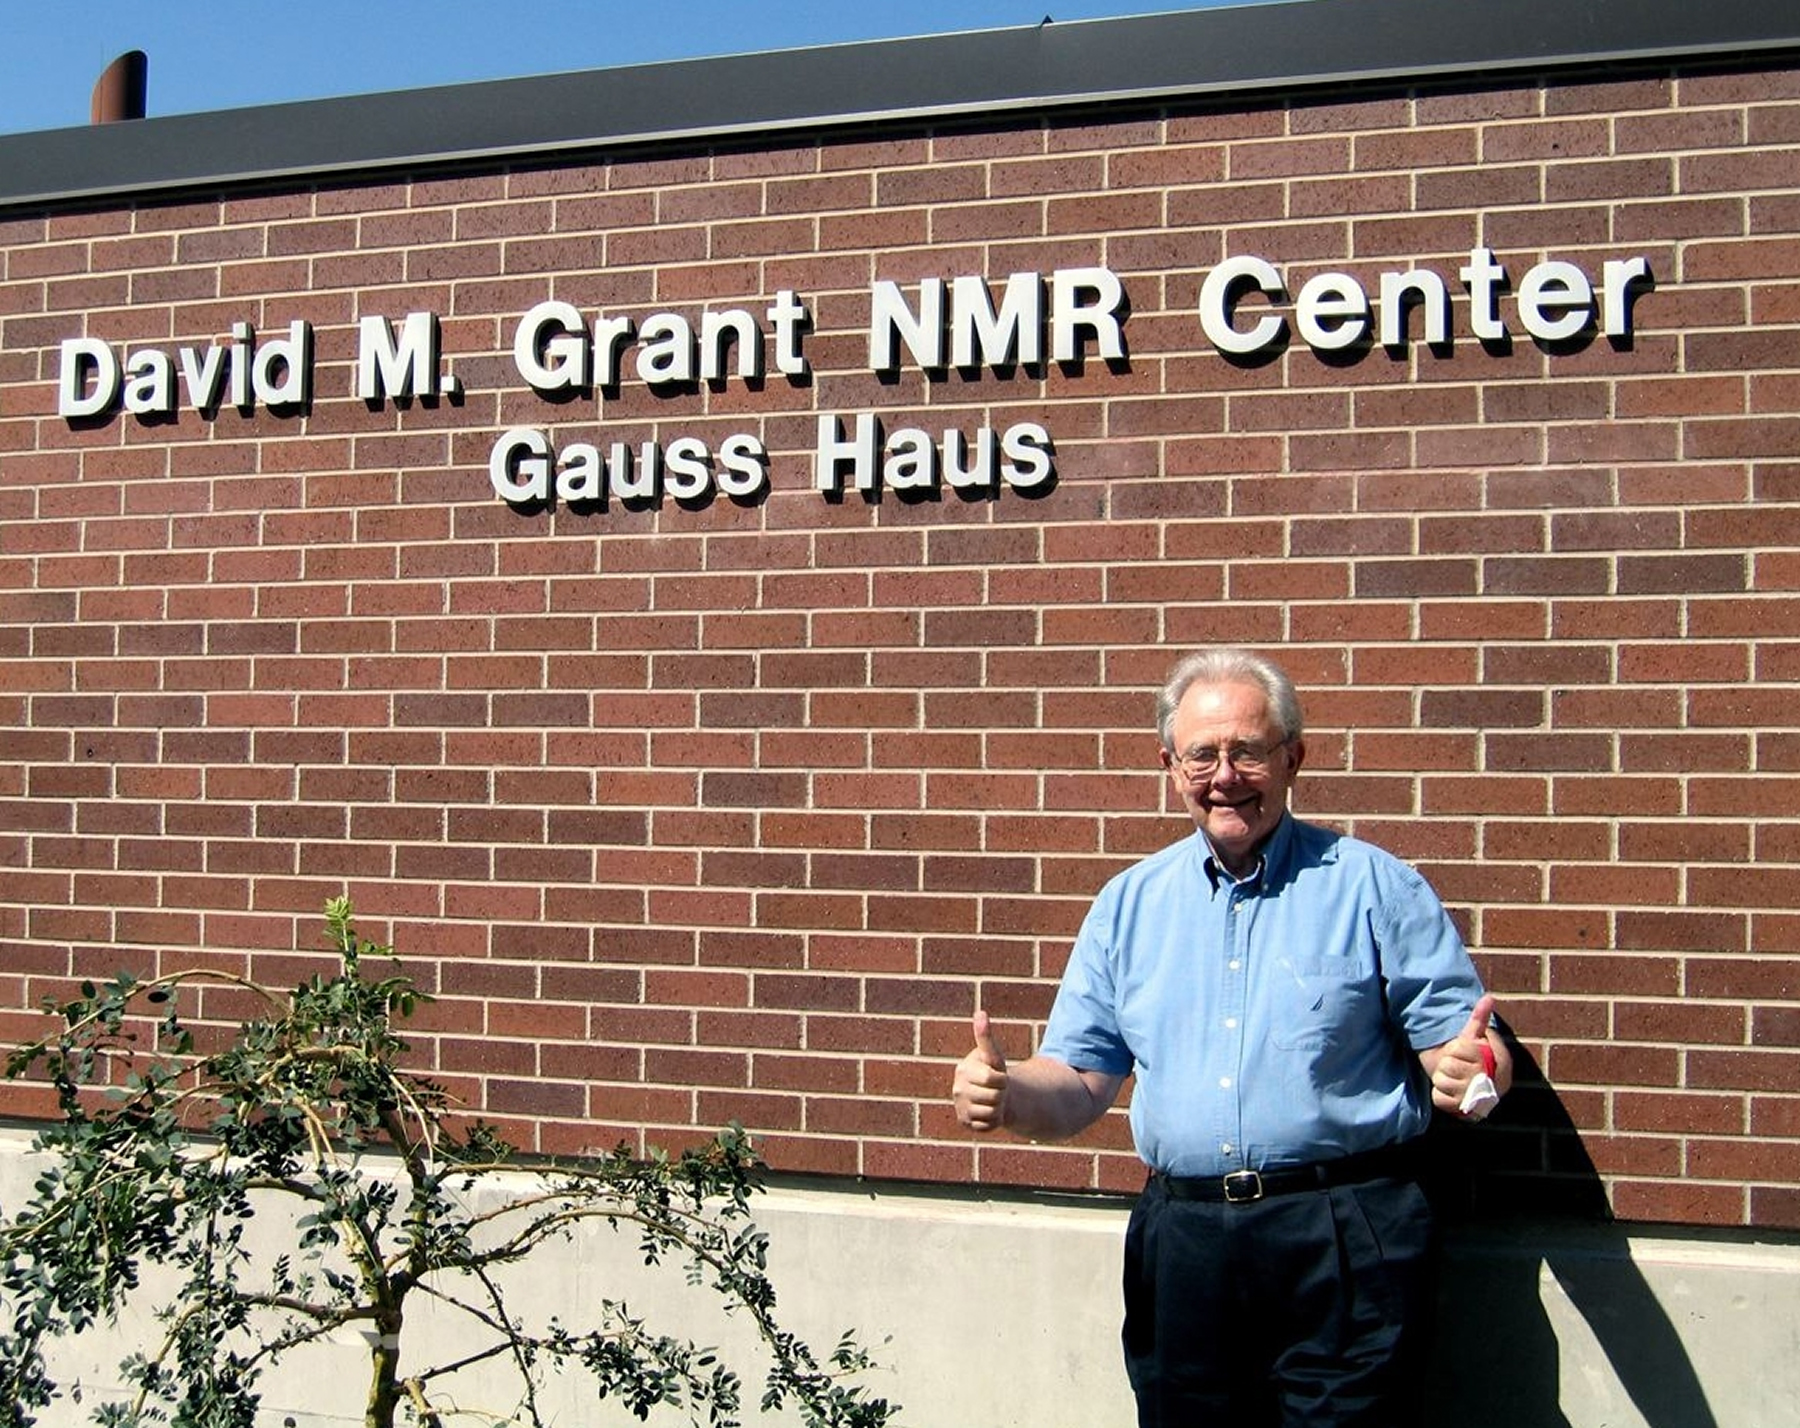 University of Utah chemist David Grant -- a pioneer in the use of powerful magnetic devices and a method known as nuclear magnetic resonance (NMR) spectrometry -- stands in front of the new $14 million NMR center named for him and nicknamed for Carl Friedrich Gauss (1777-1855), a mathematician whose name s used for the units that indicate magnetic field strengths.